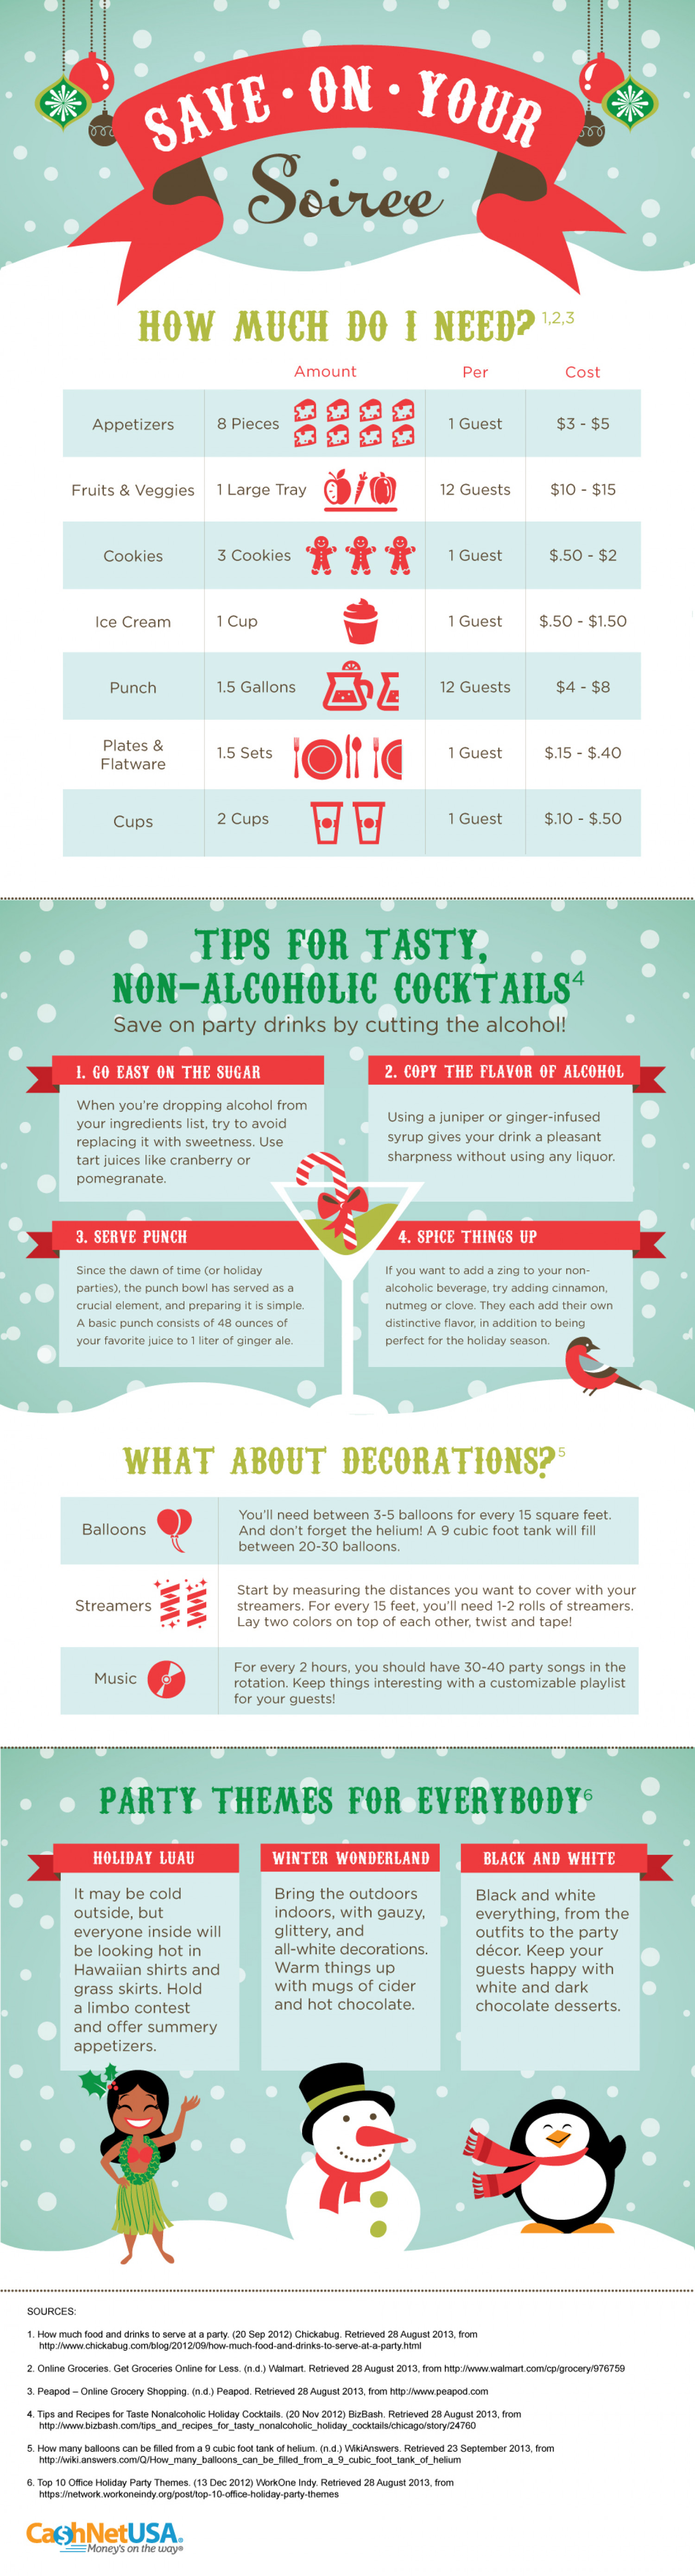 Saving on Your Soiree Infographic